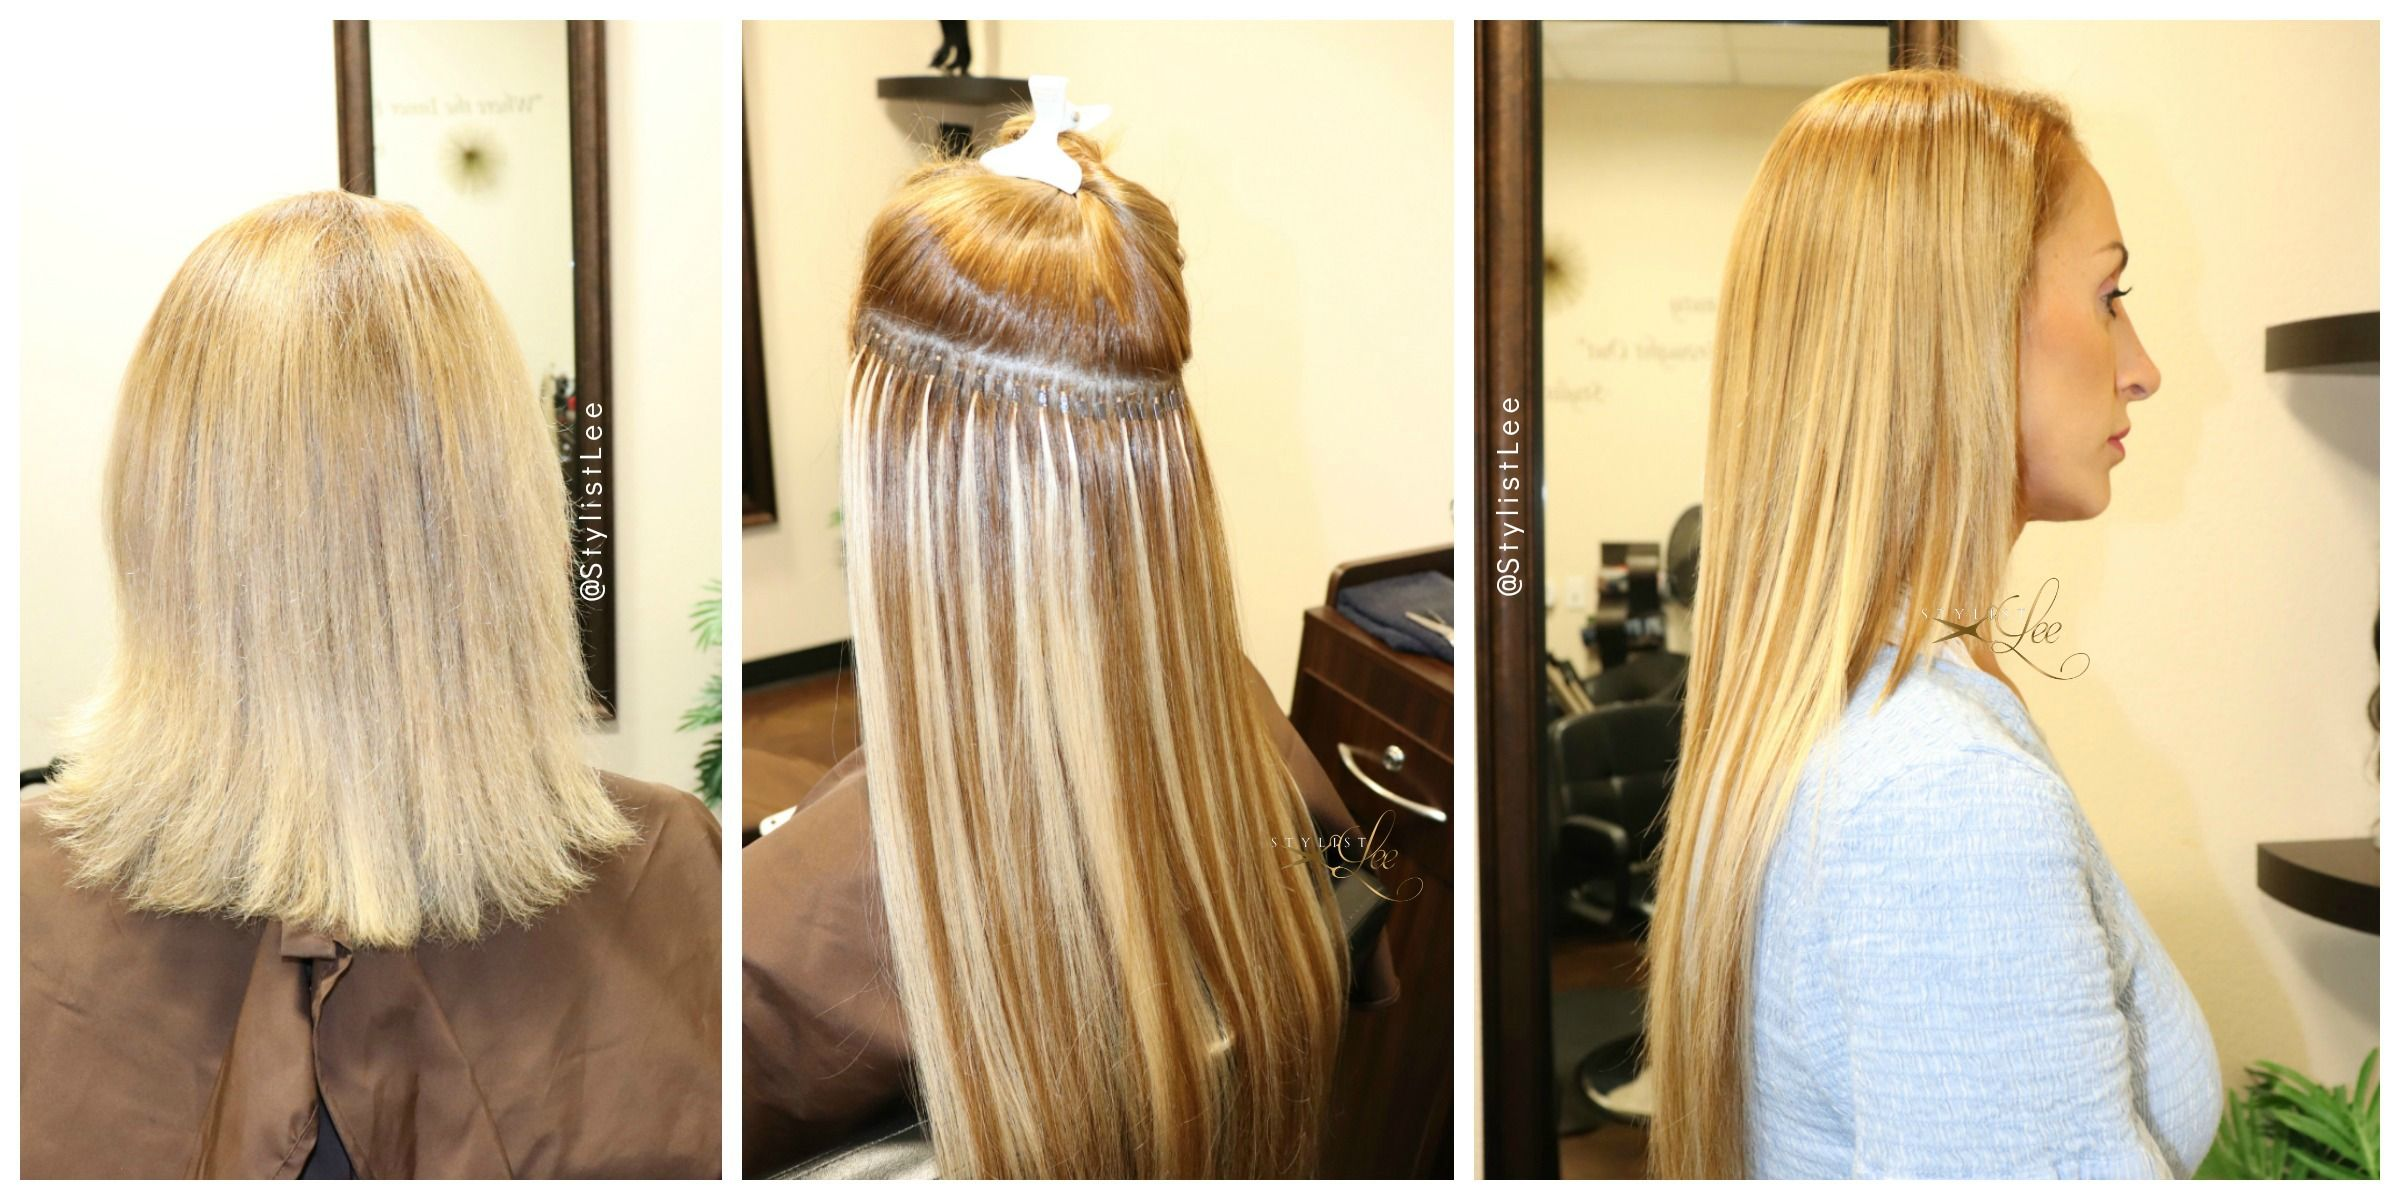 Microlinks hair extensions. This service requires a in